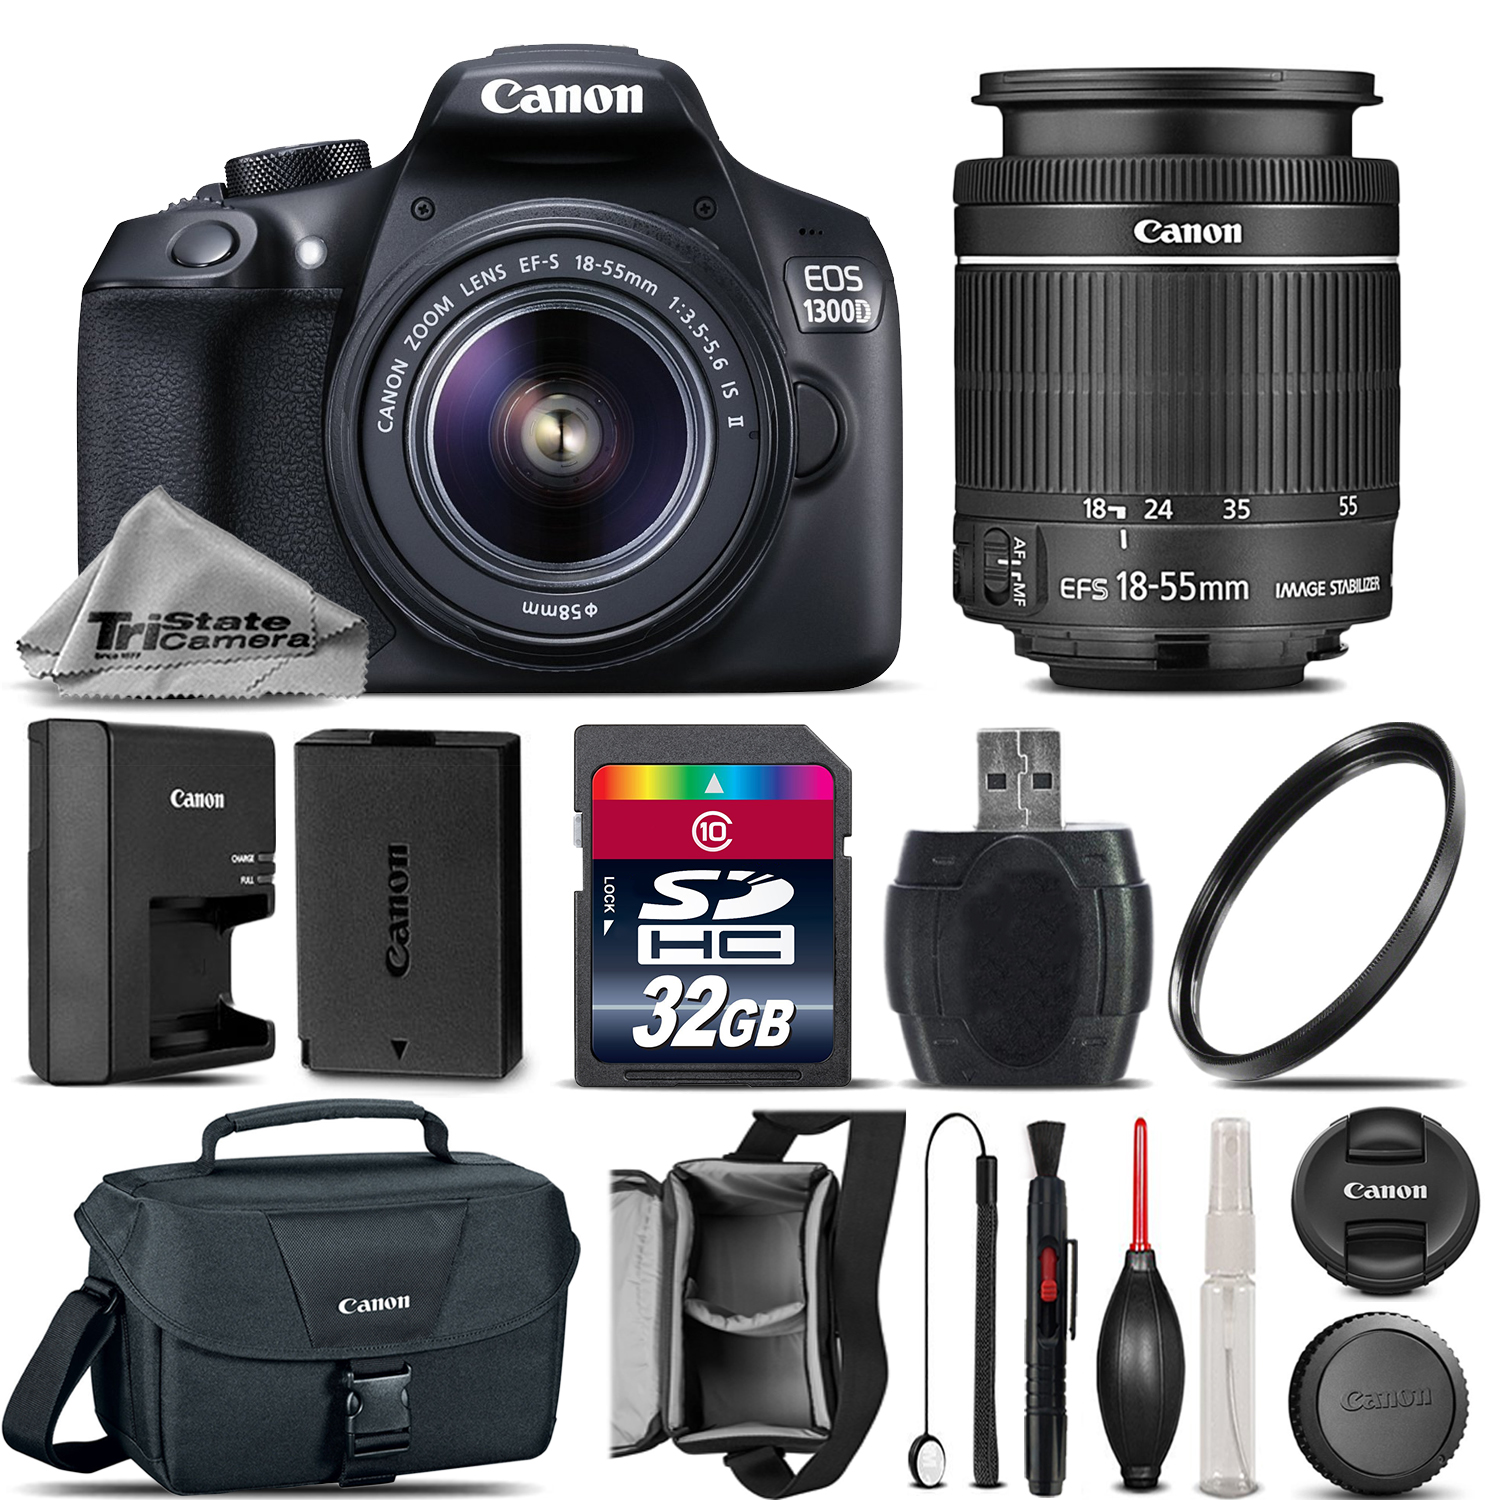 EOS Rebel T6 / 1300D Camera + 18-55mm IS II Lens + Canon Case - 32GB Kit *FREE SHIPPING*